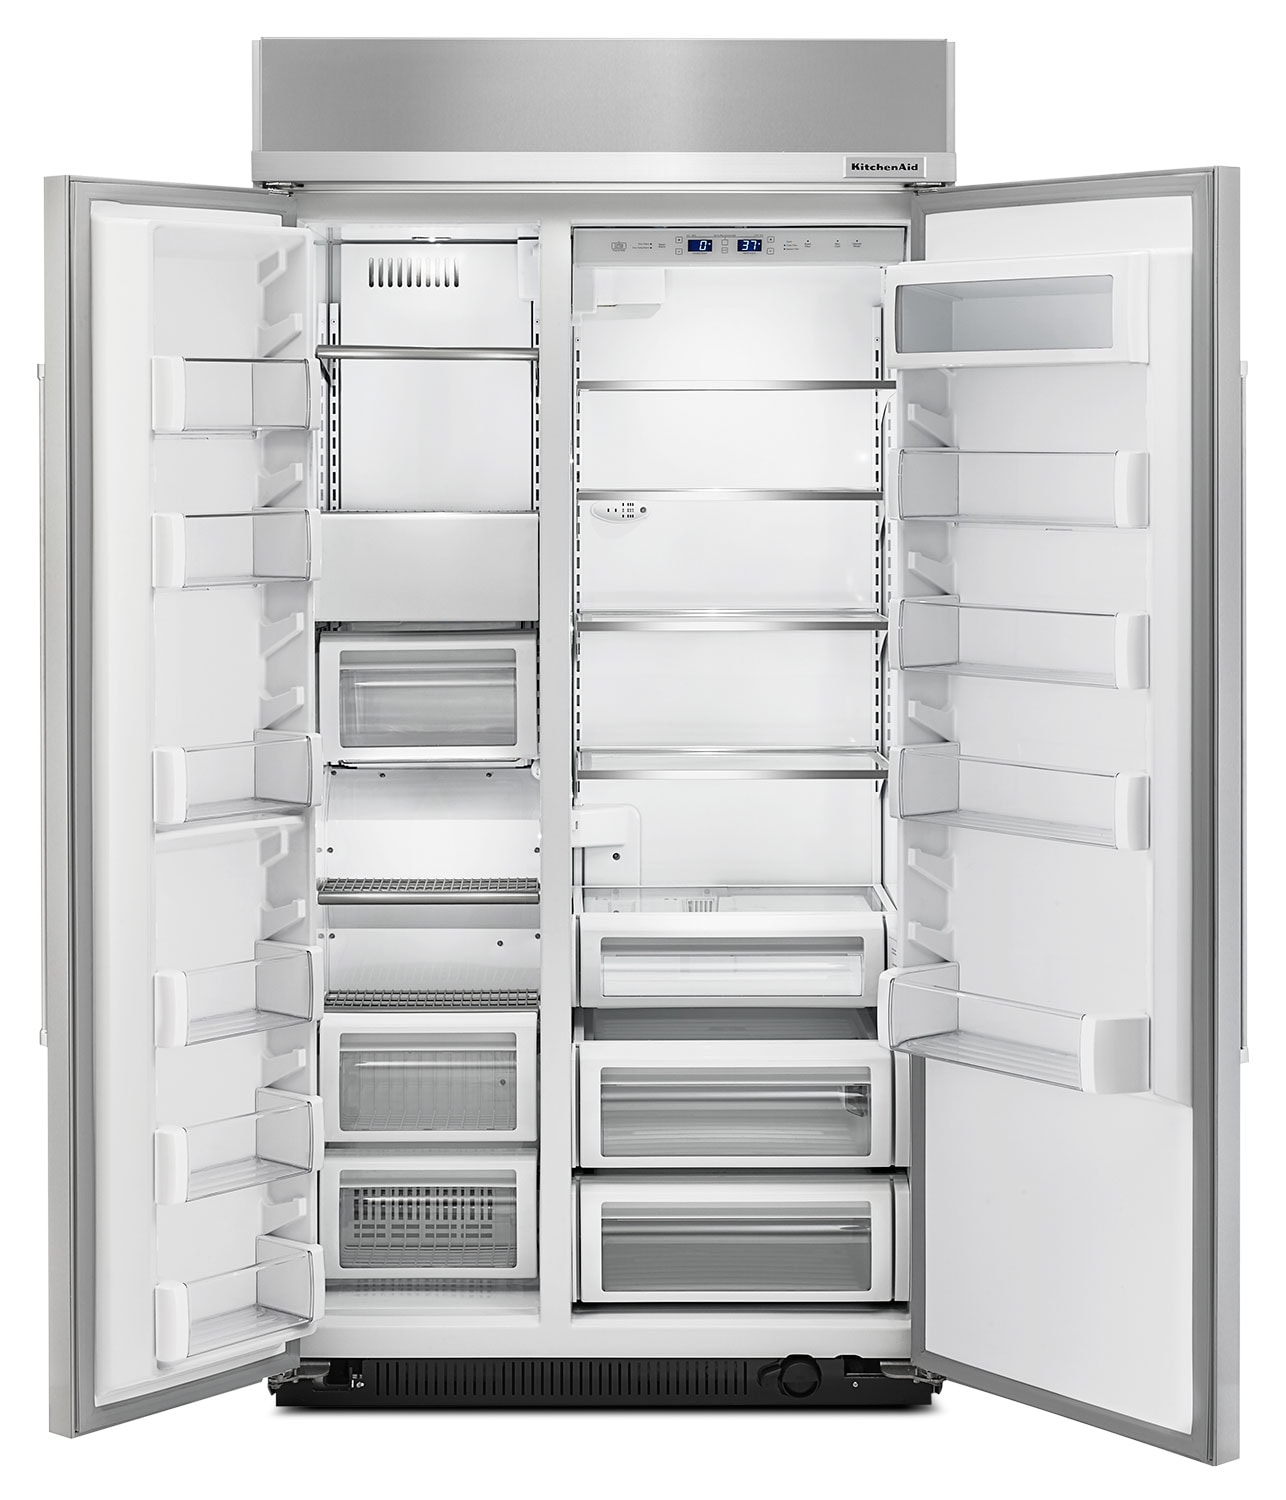 KitchenAid 25.5 Cu. Ft. Built-In Side-by-Side Refrigerator